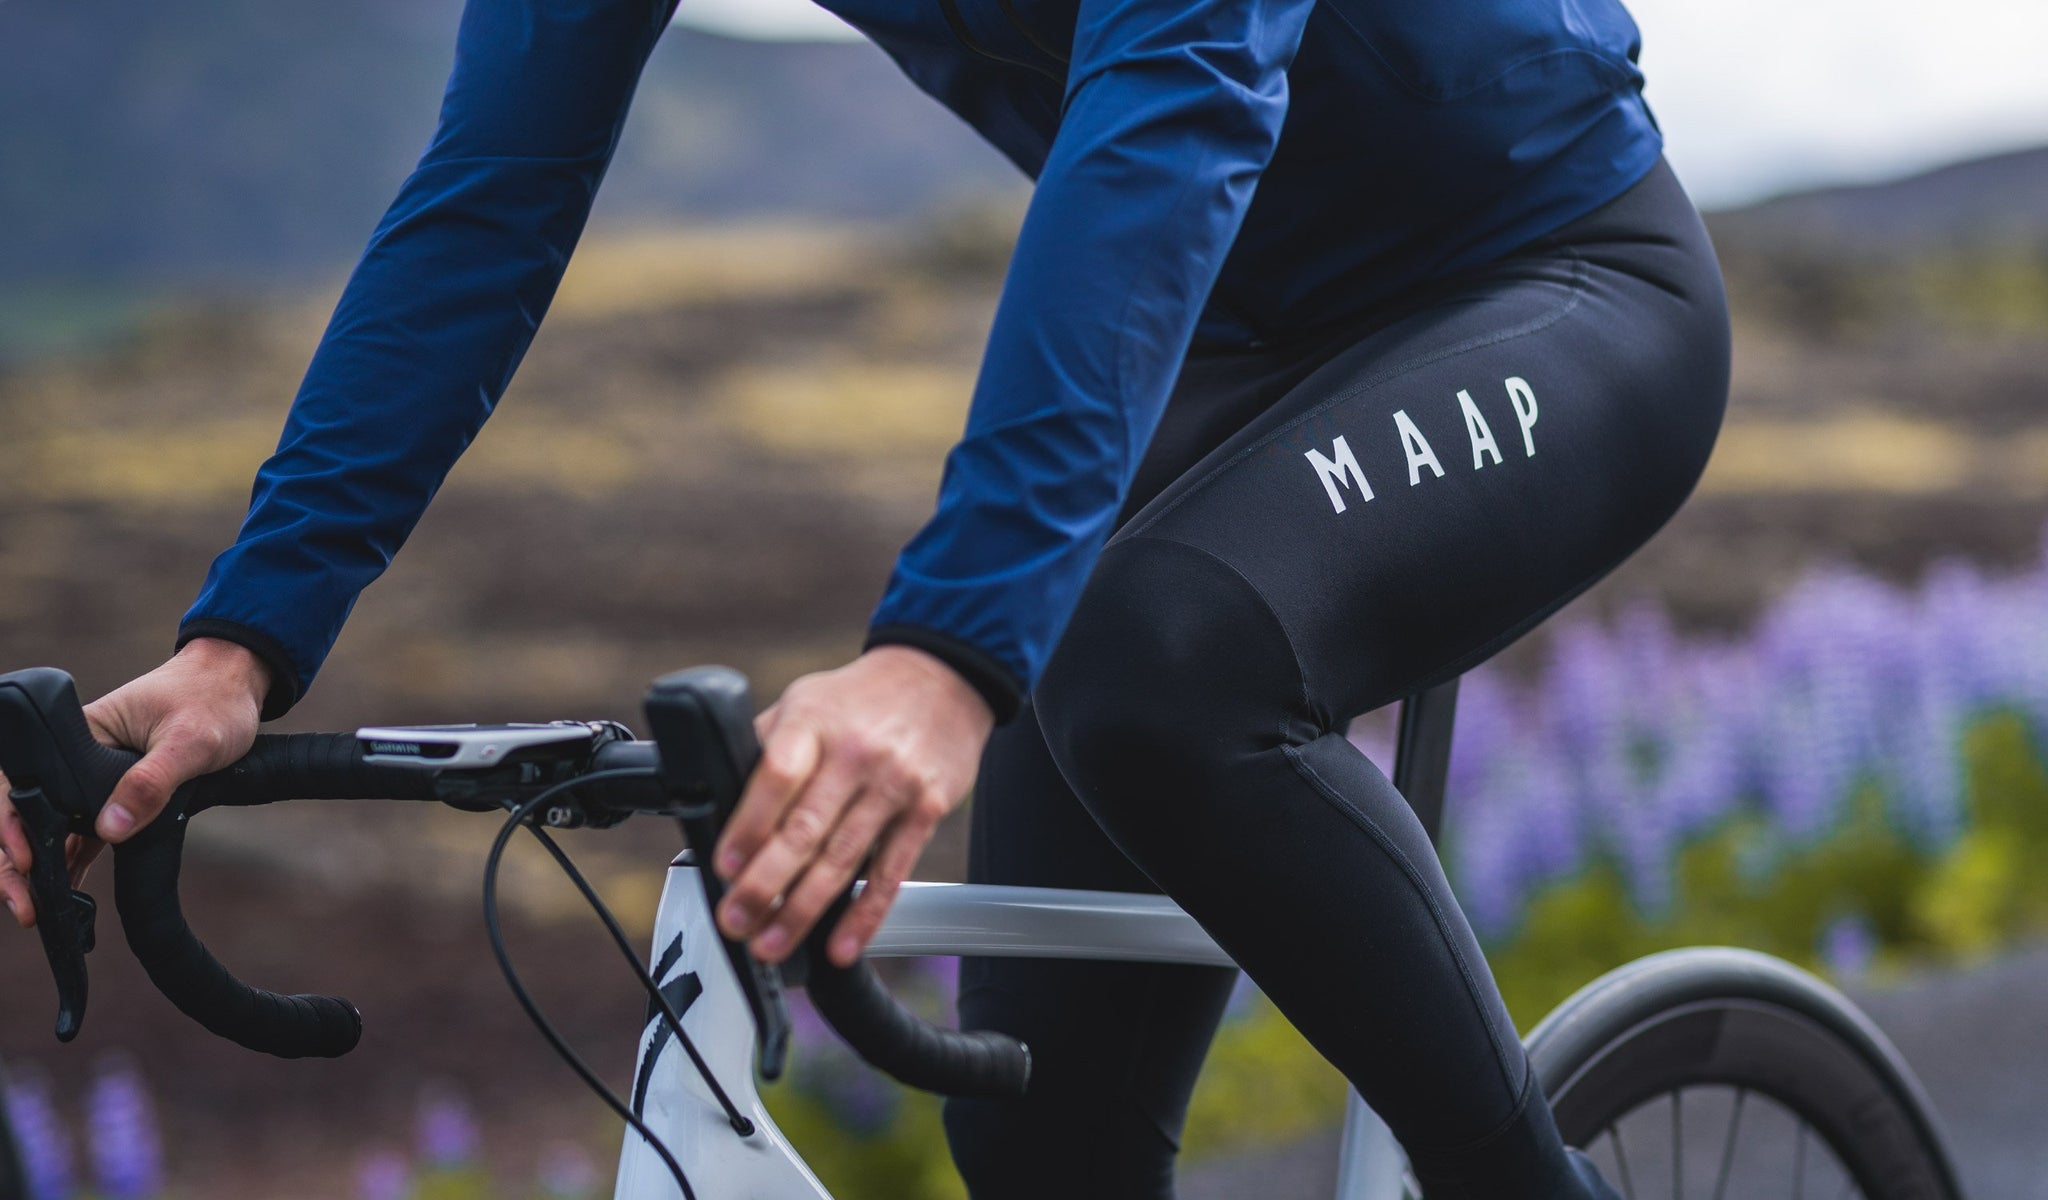 MAAP Team Thermal Cycling Bib Tights in Black for riding in cold weather conditions.